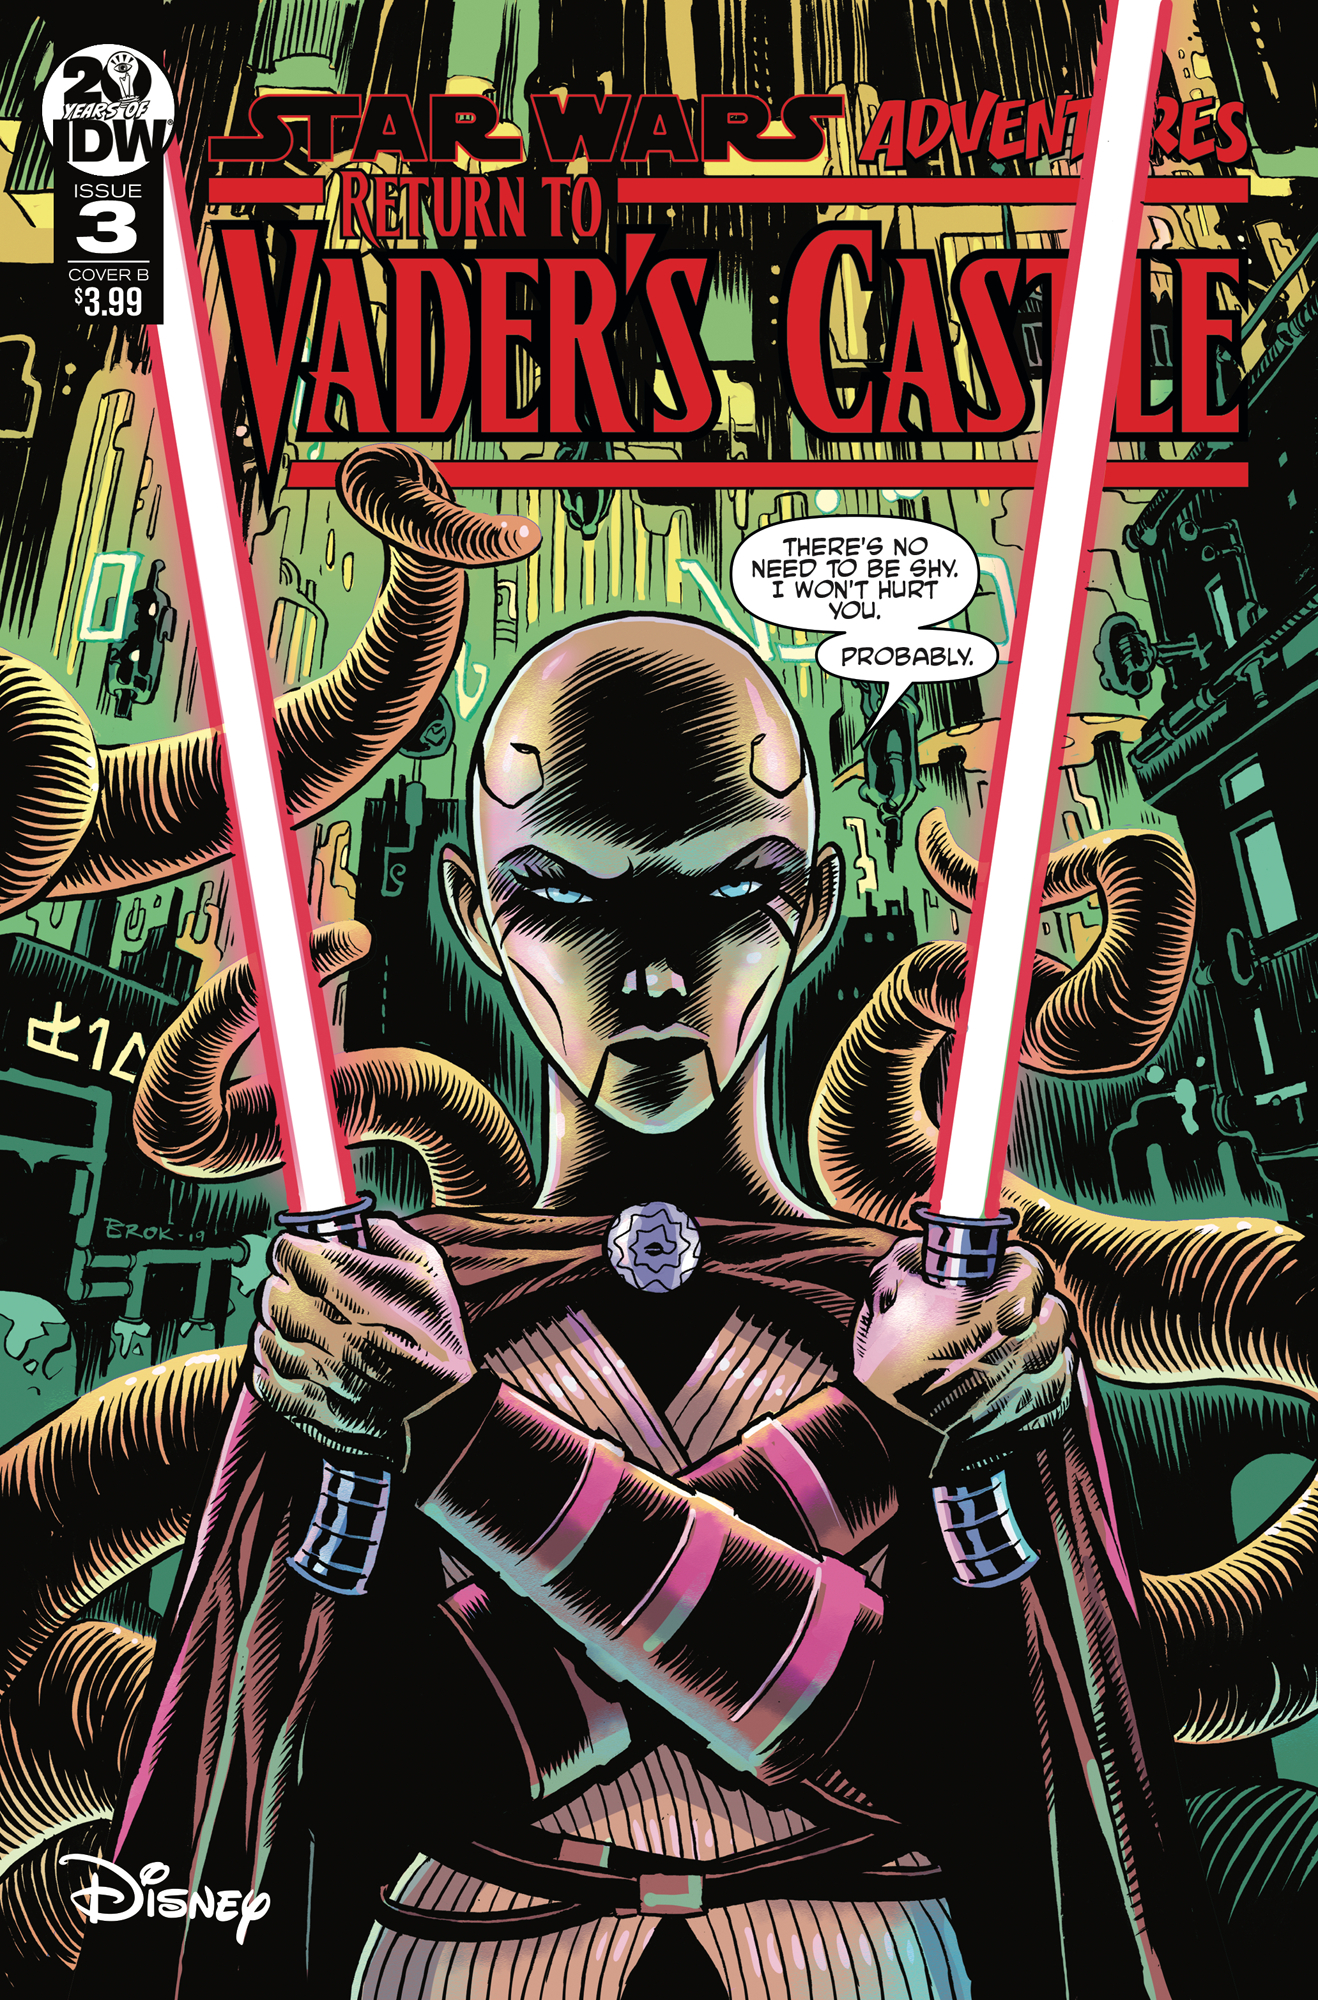 STAR WARS ADVENTURES RETURN TO VADERS CASTLE #3 CVR B BROKEN